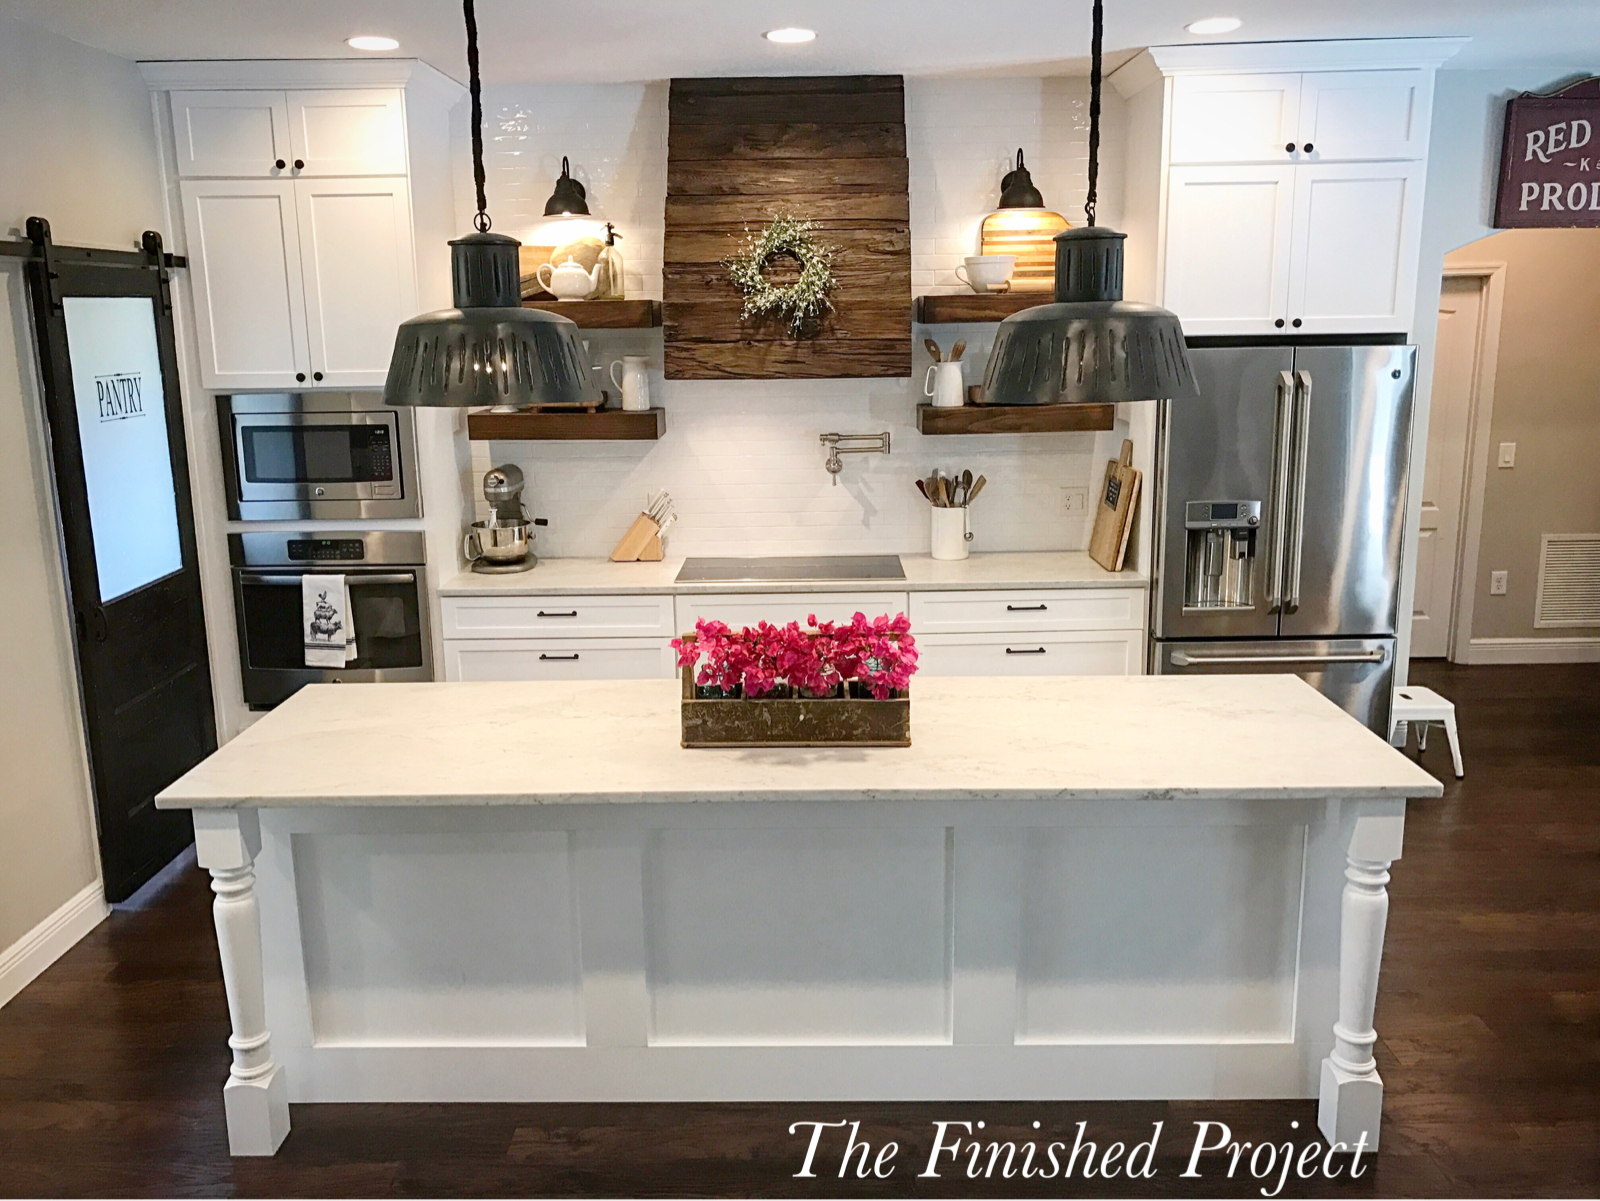 Farmhouse Kitchen White Cabinets Wood Vent Hood Black Pendant Lights Wood Floors Follow On Instagr Dark Wood Cabinets White Kitchen Cabinets Wood Cabinets